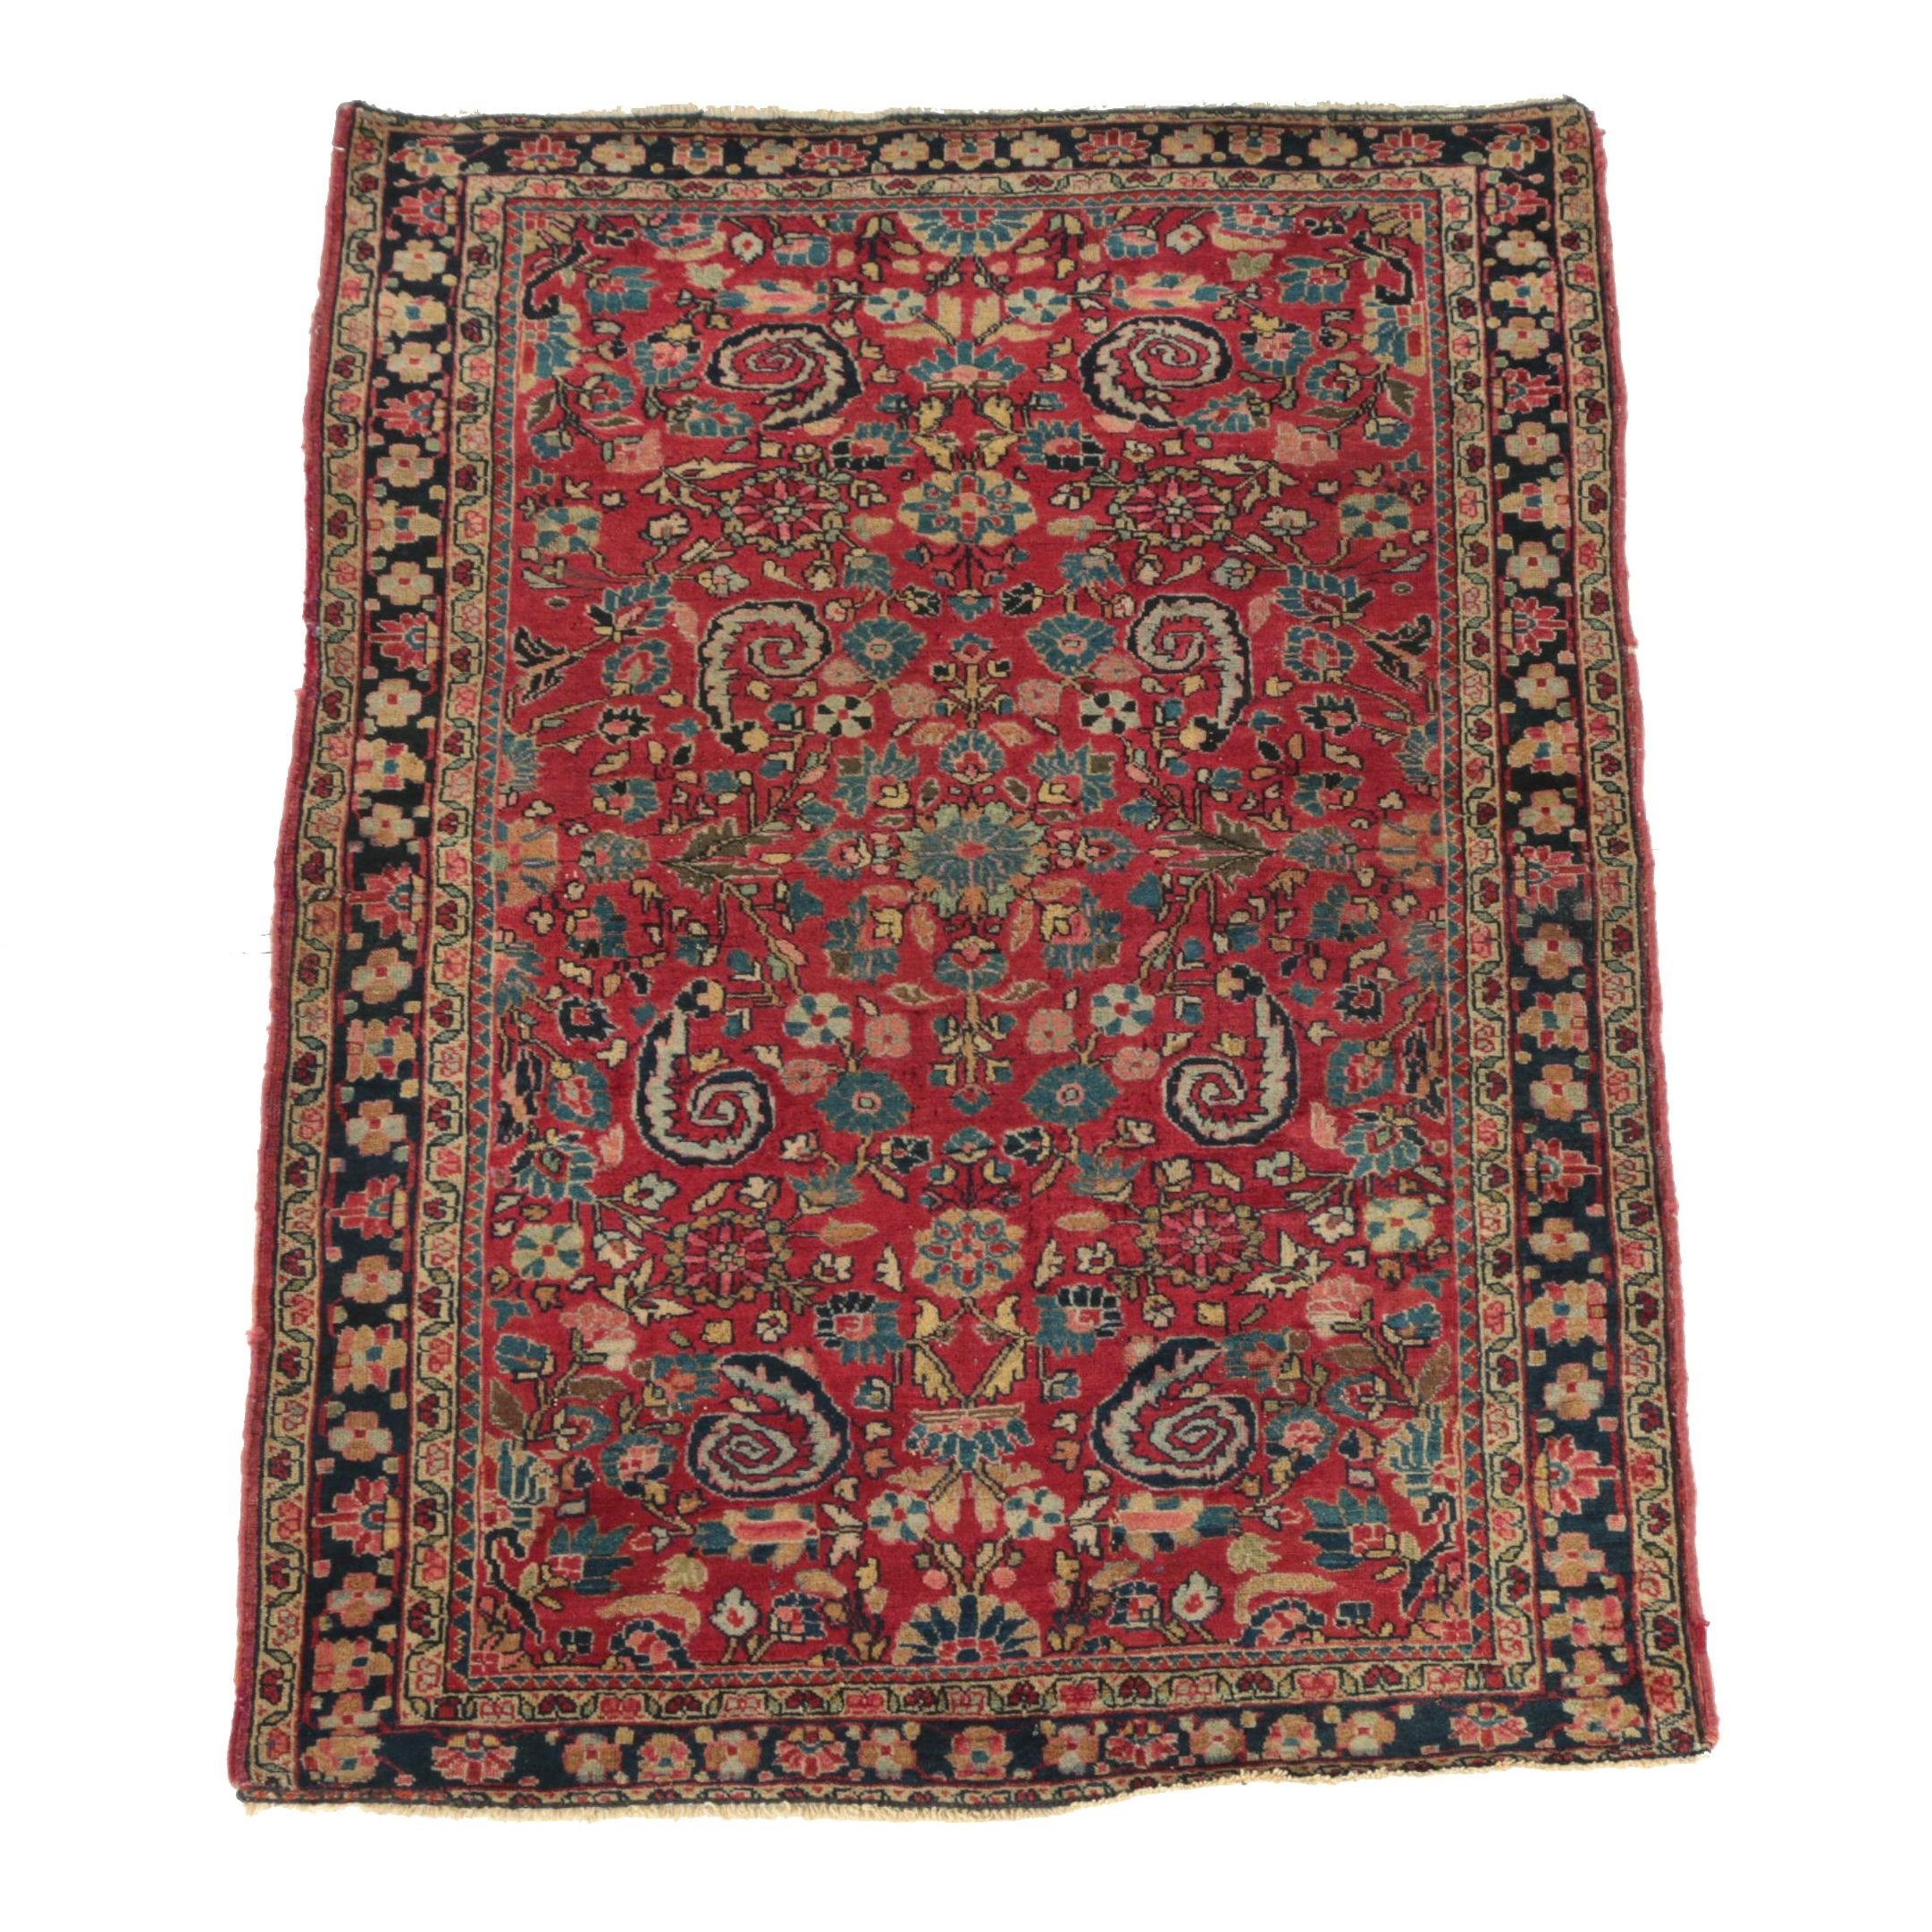 Semi-Antique Hand-Knotted Persian Sarouk Wool Accent Rug